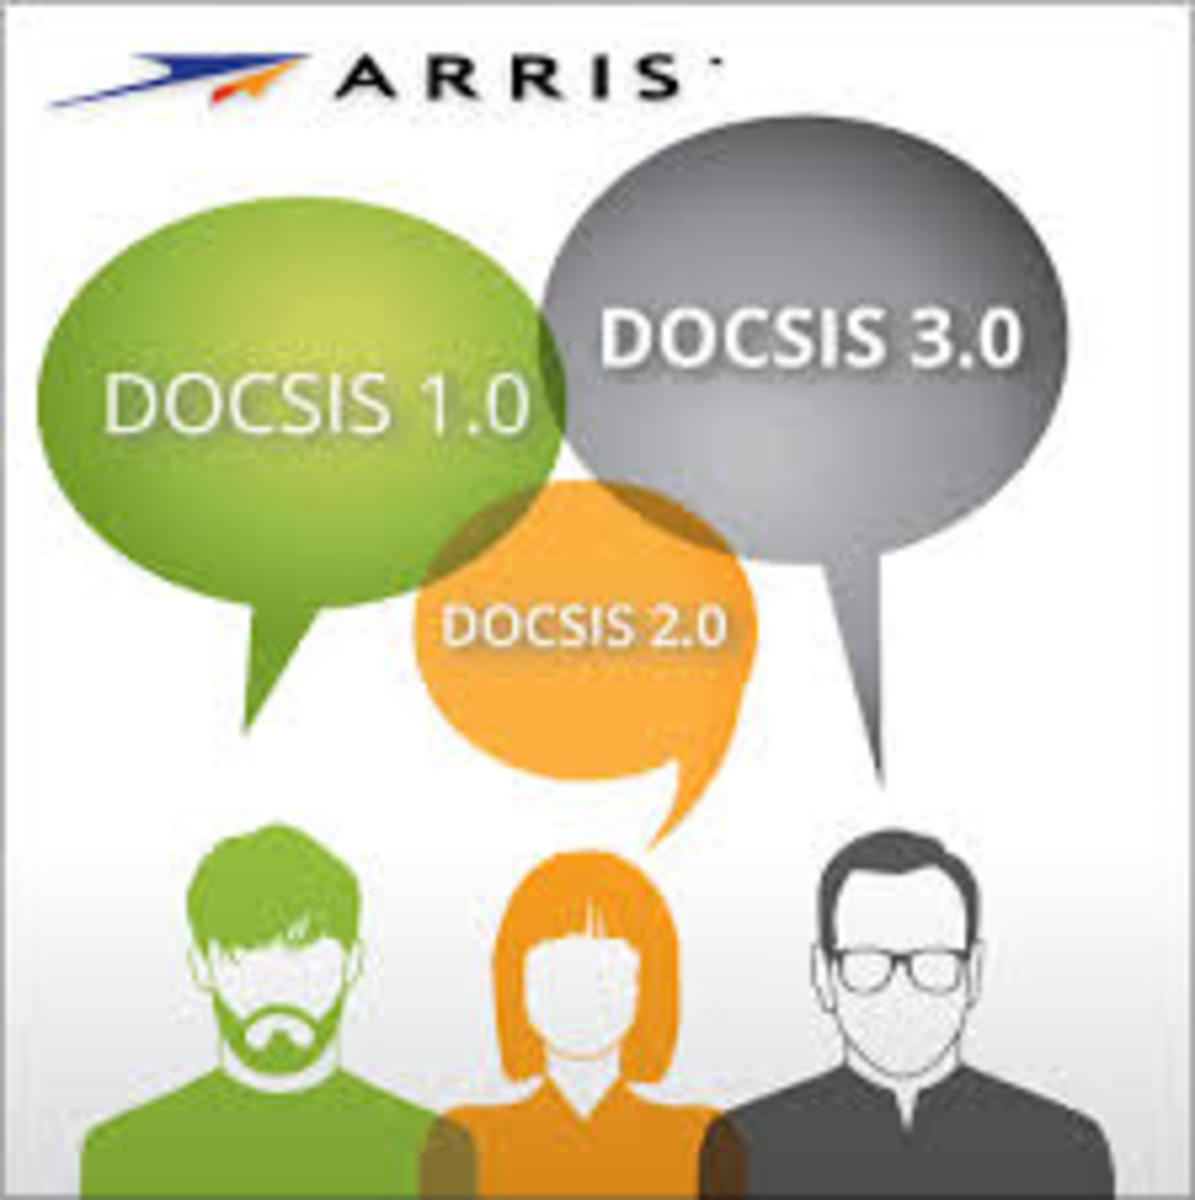 The DOCSIS Standard for cable modems